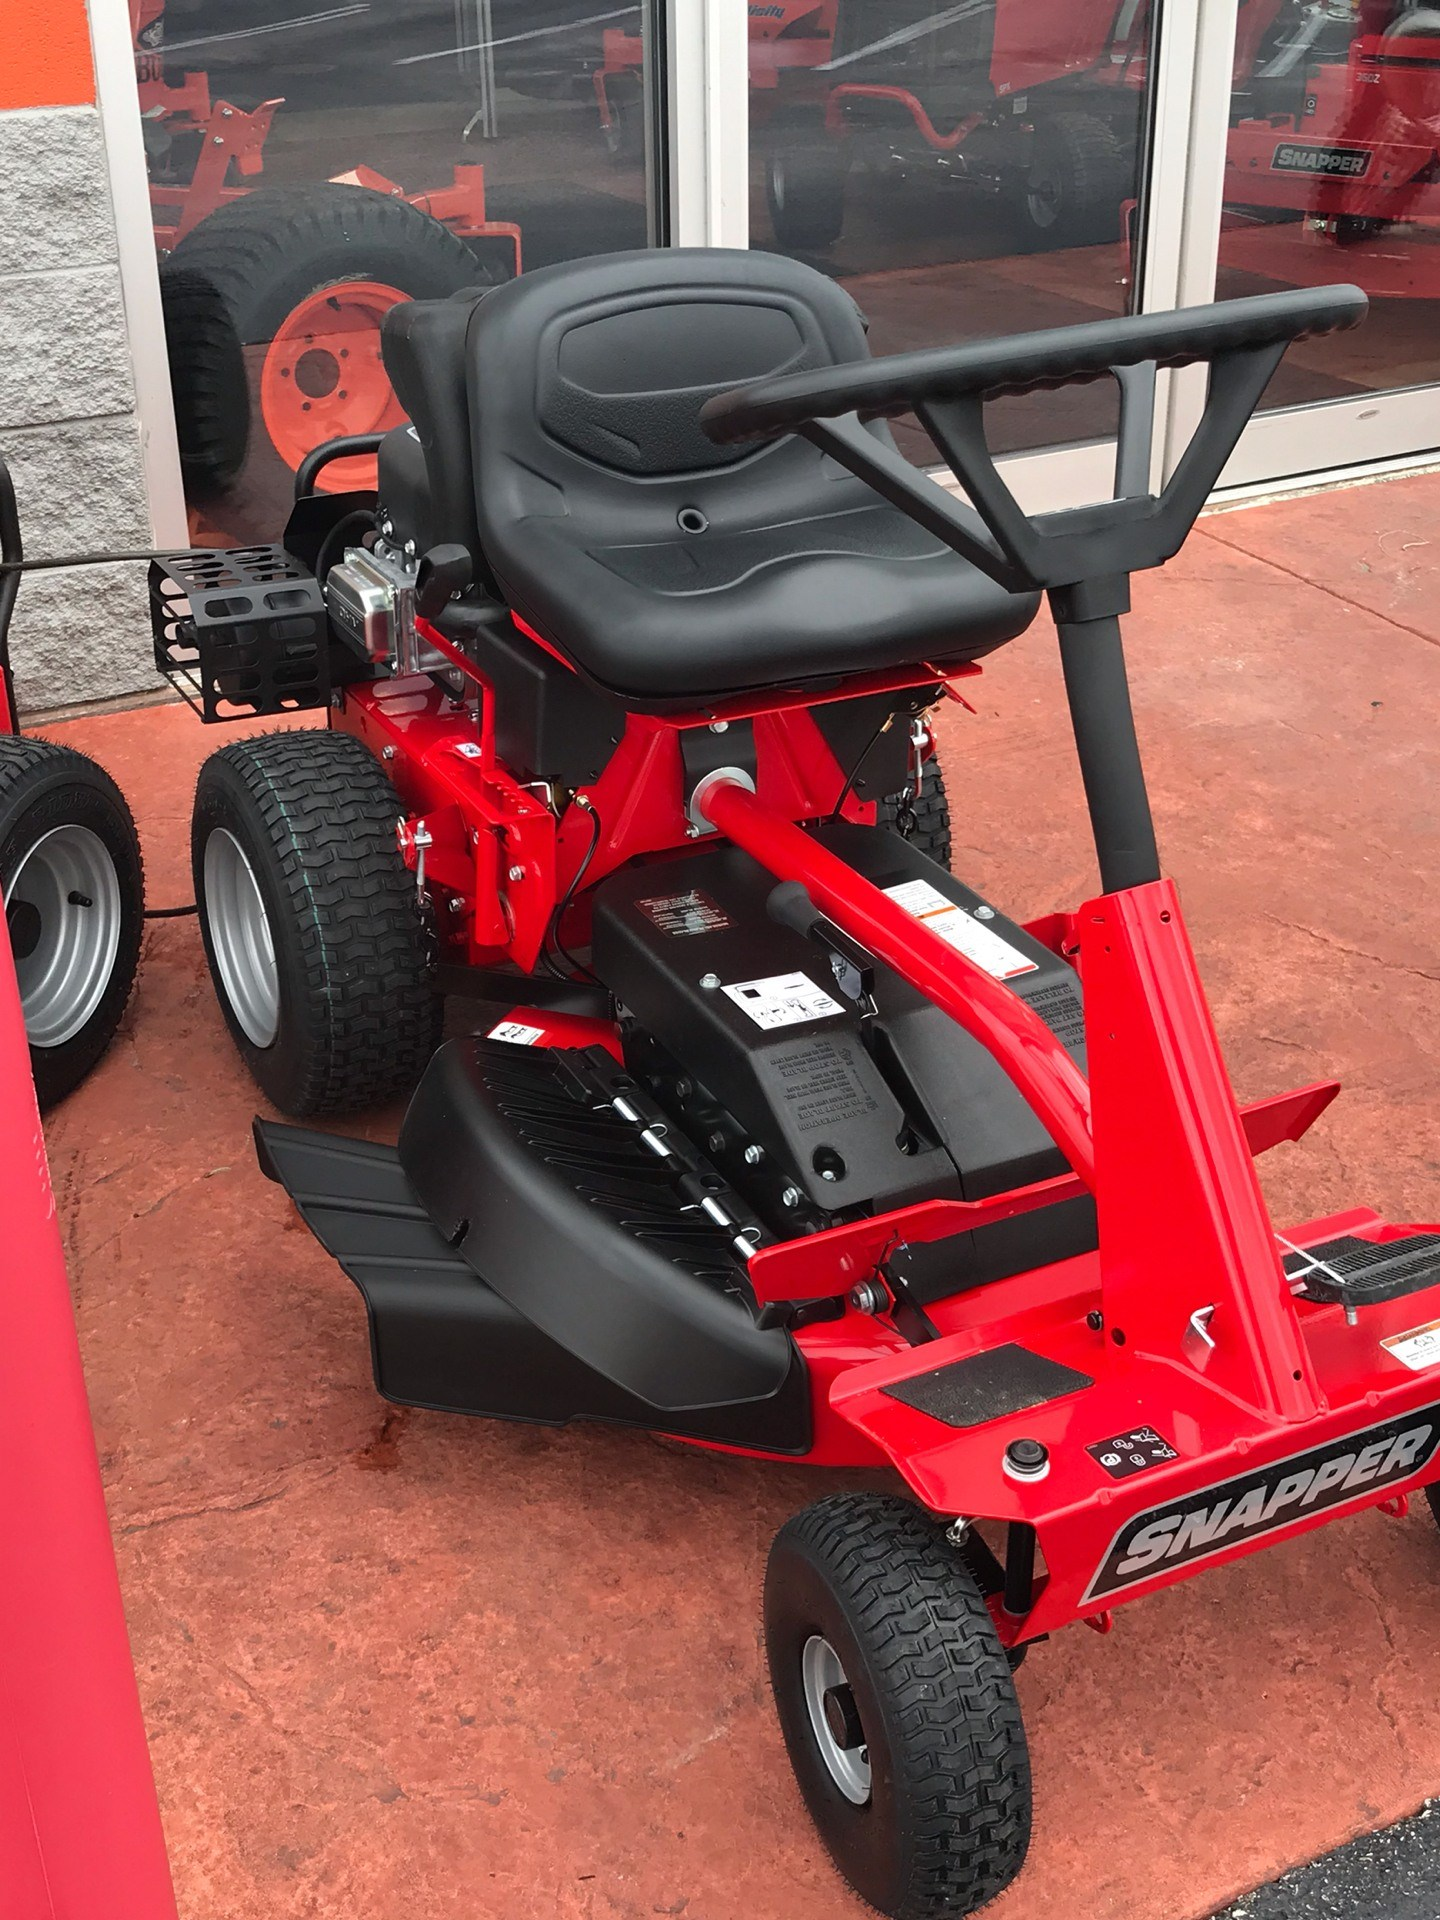 2019 Snapper Classic Rear Engine Riding Lawn Mower in Evansville, Indiana - Photo 3